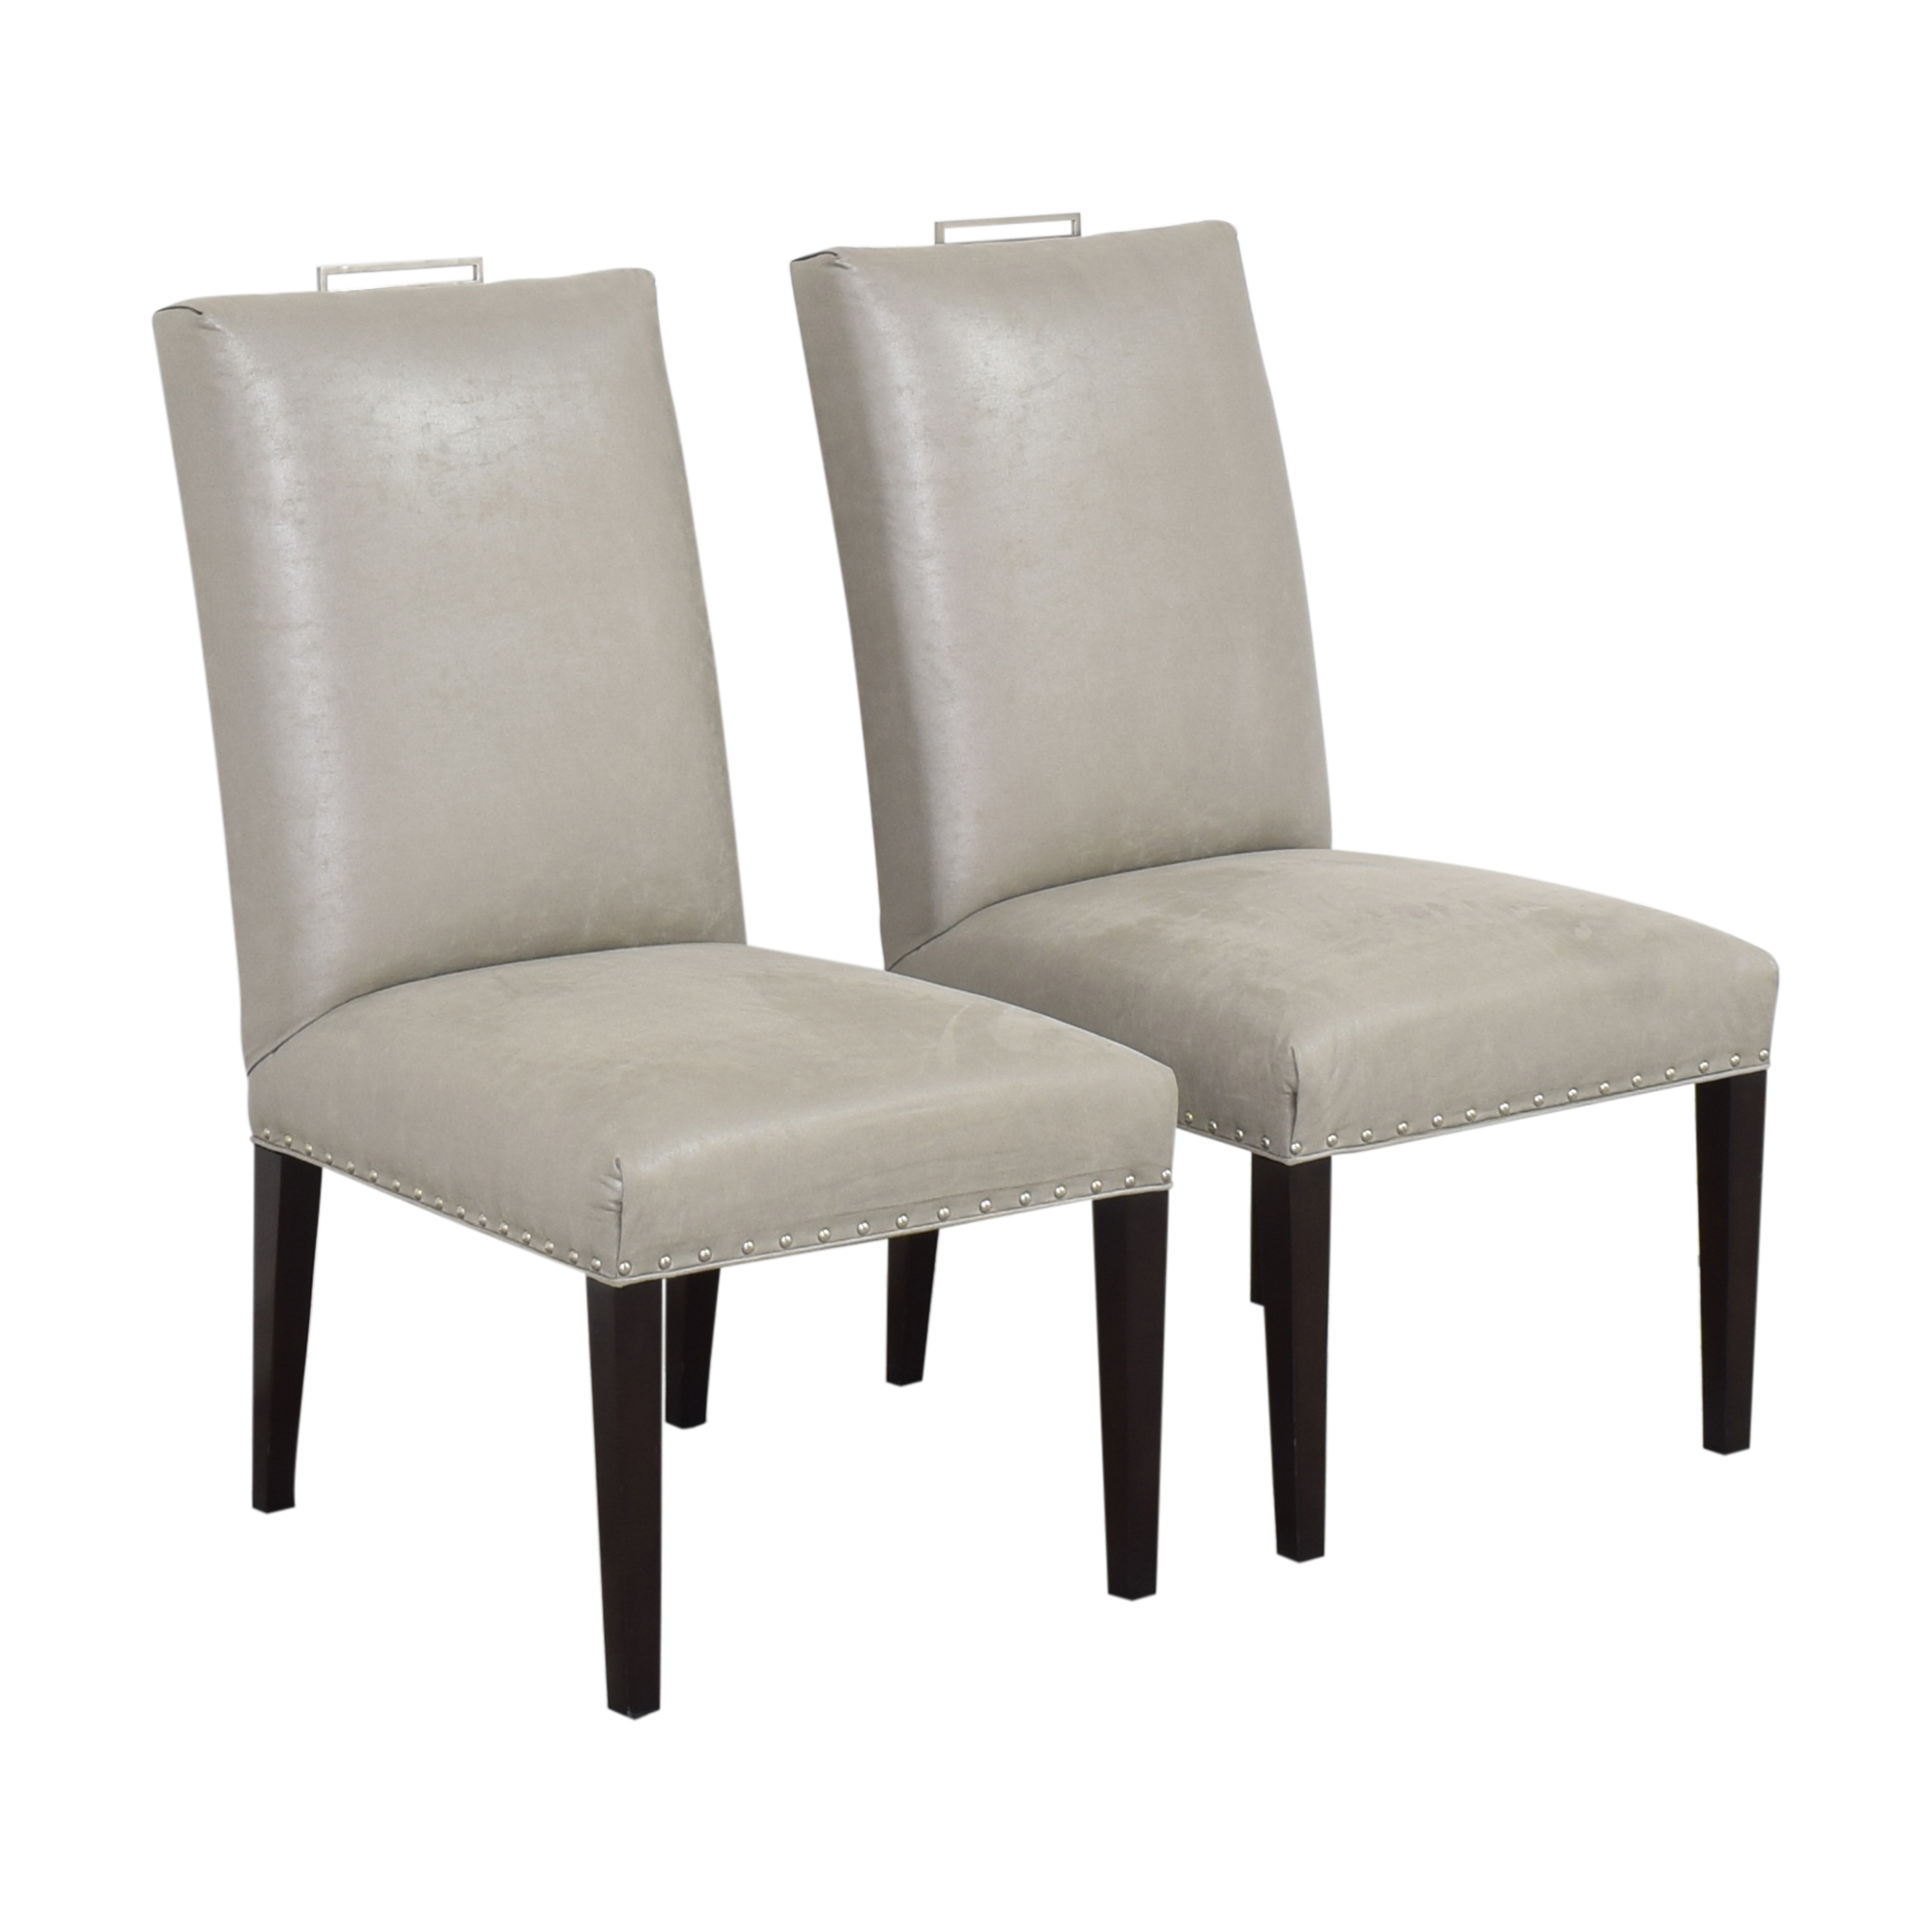 Vanguard Furniture Vanguard Michael Weiss Everhart Side Dining Chairs for sale